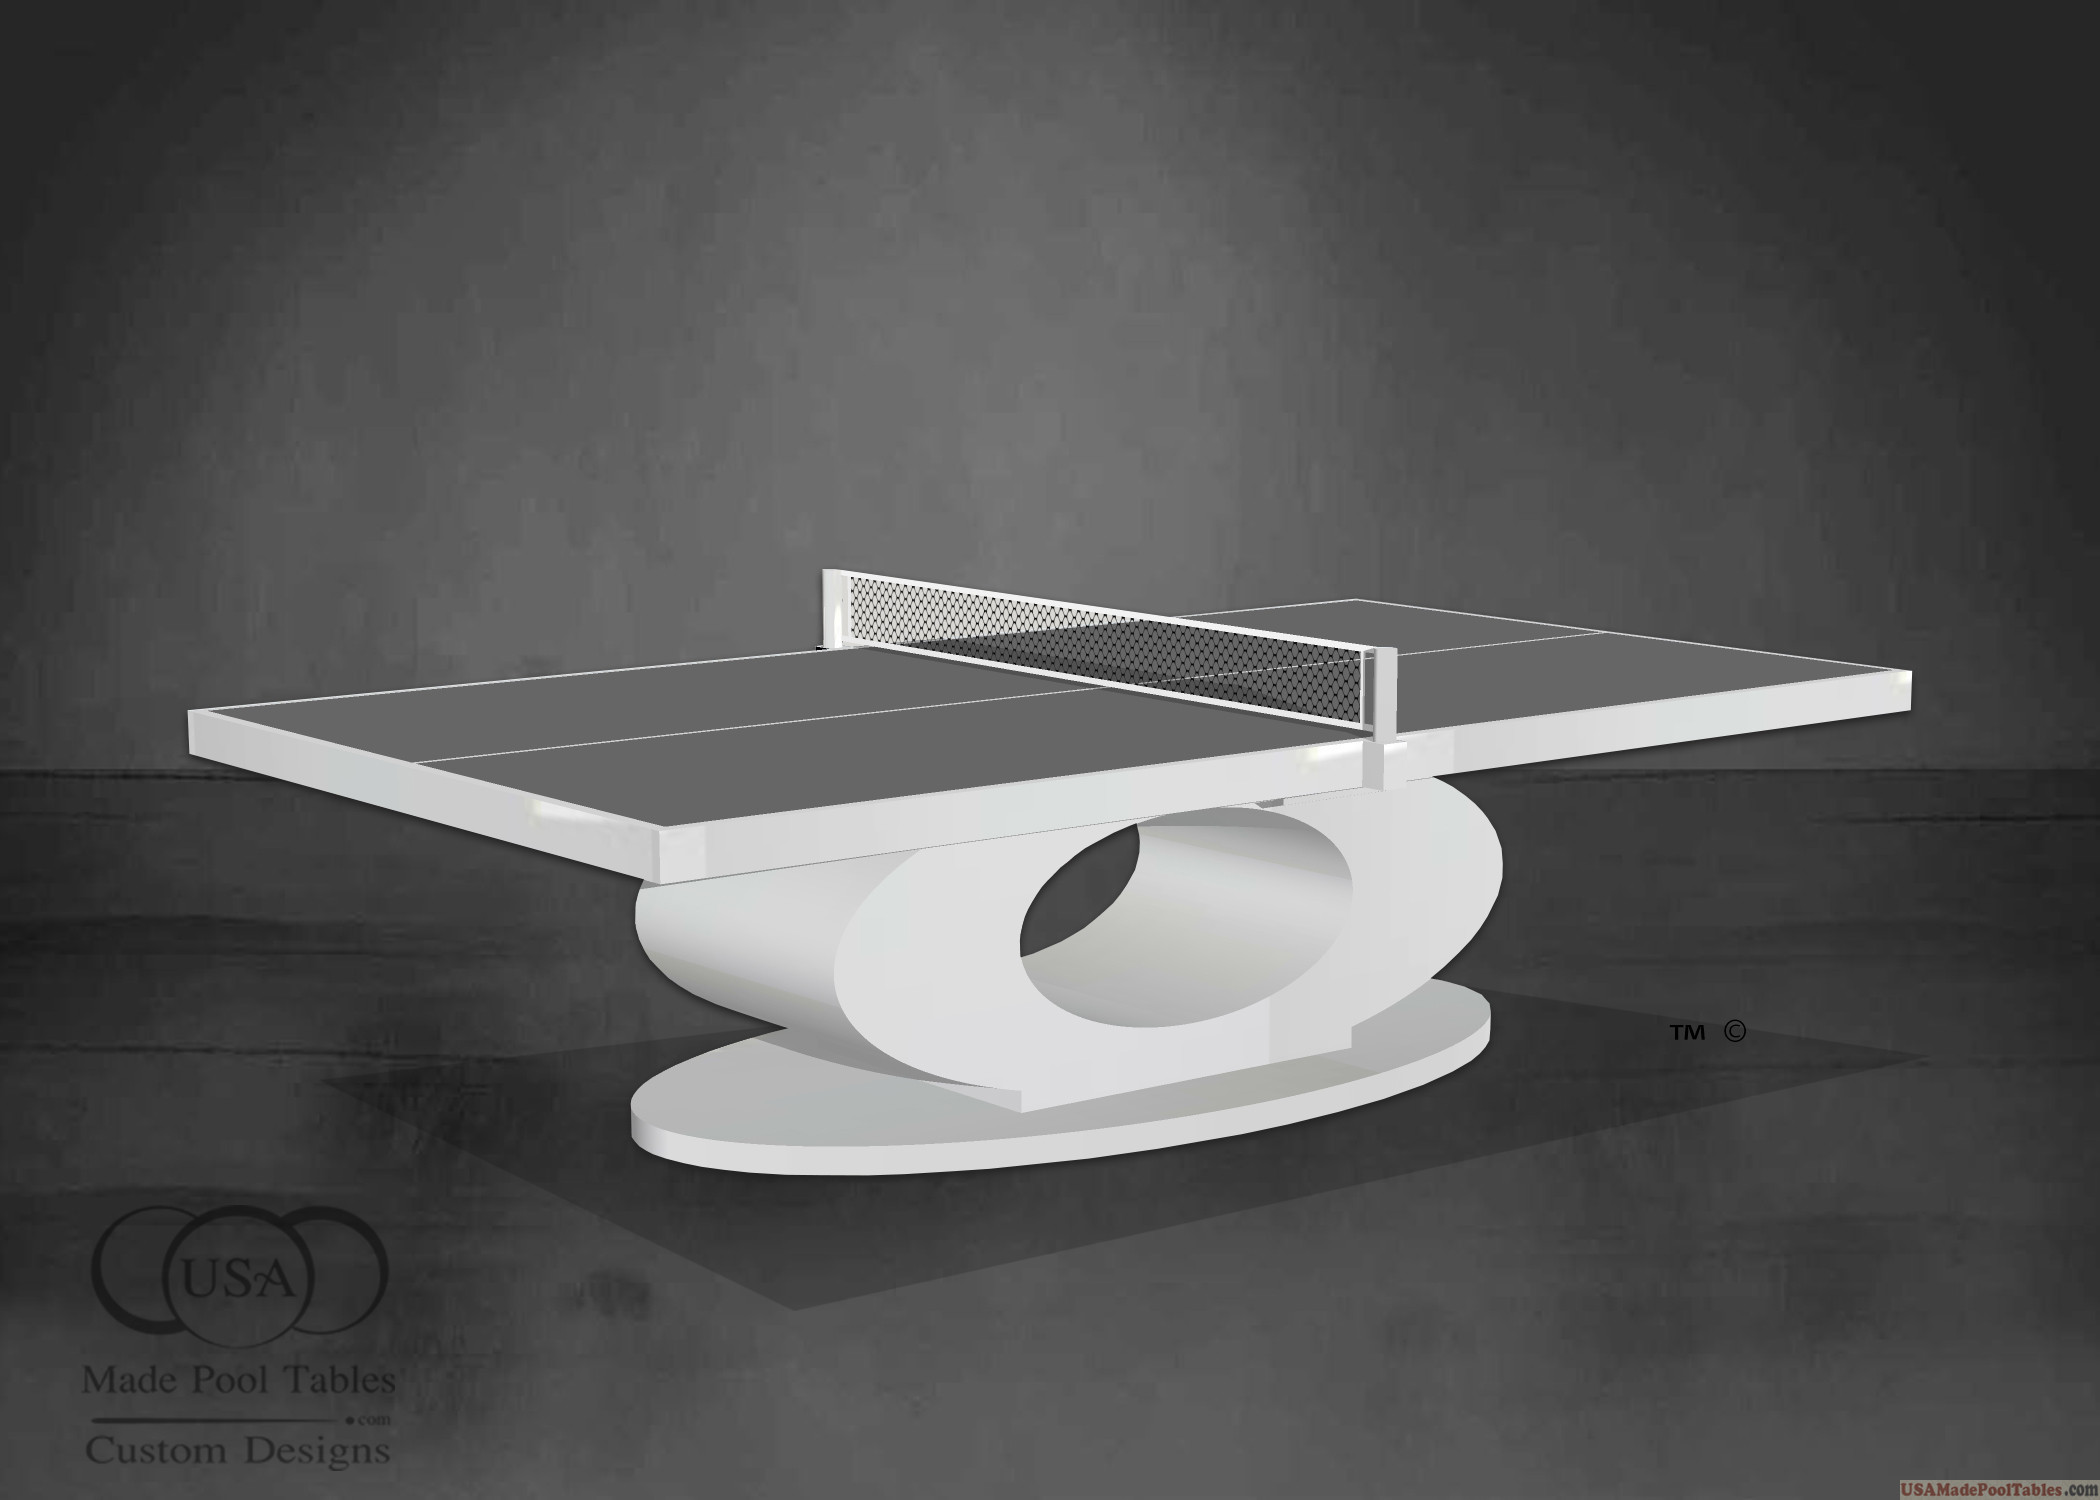 WHITE PING PONG TABLE TENNIS